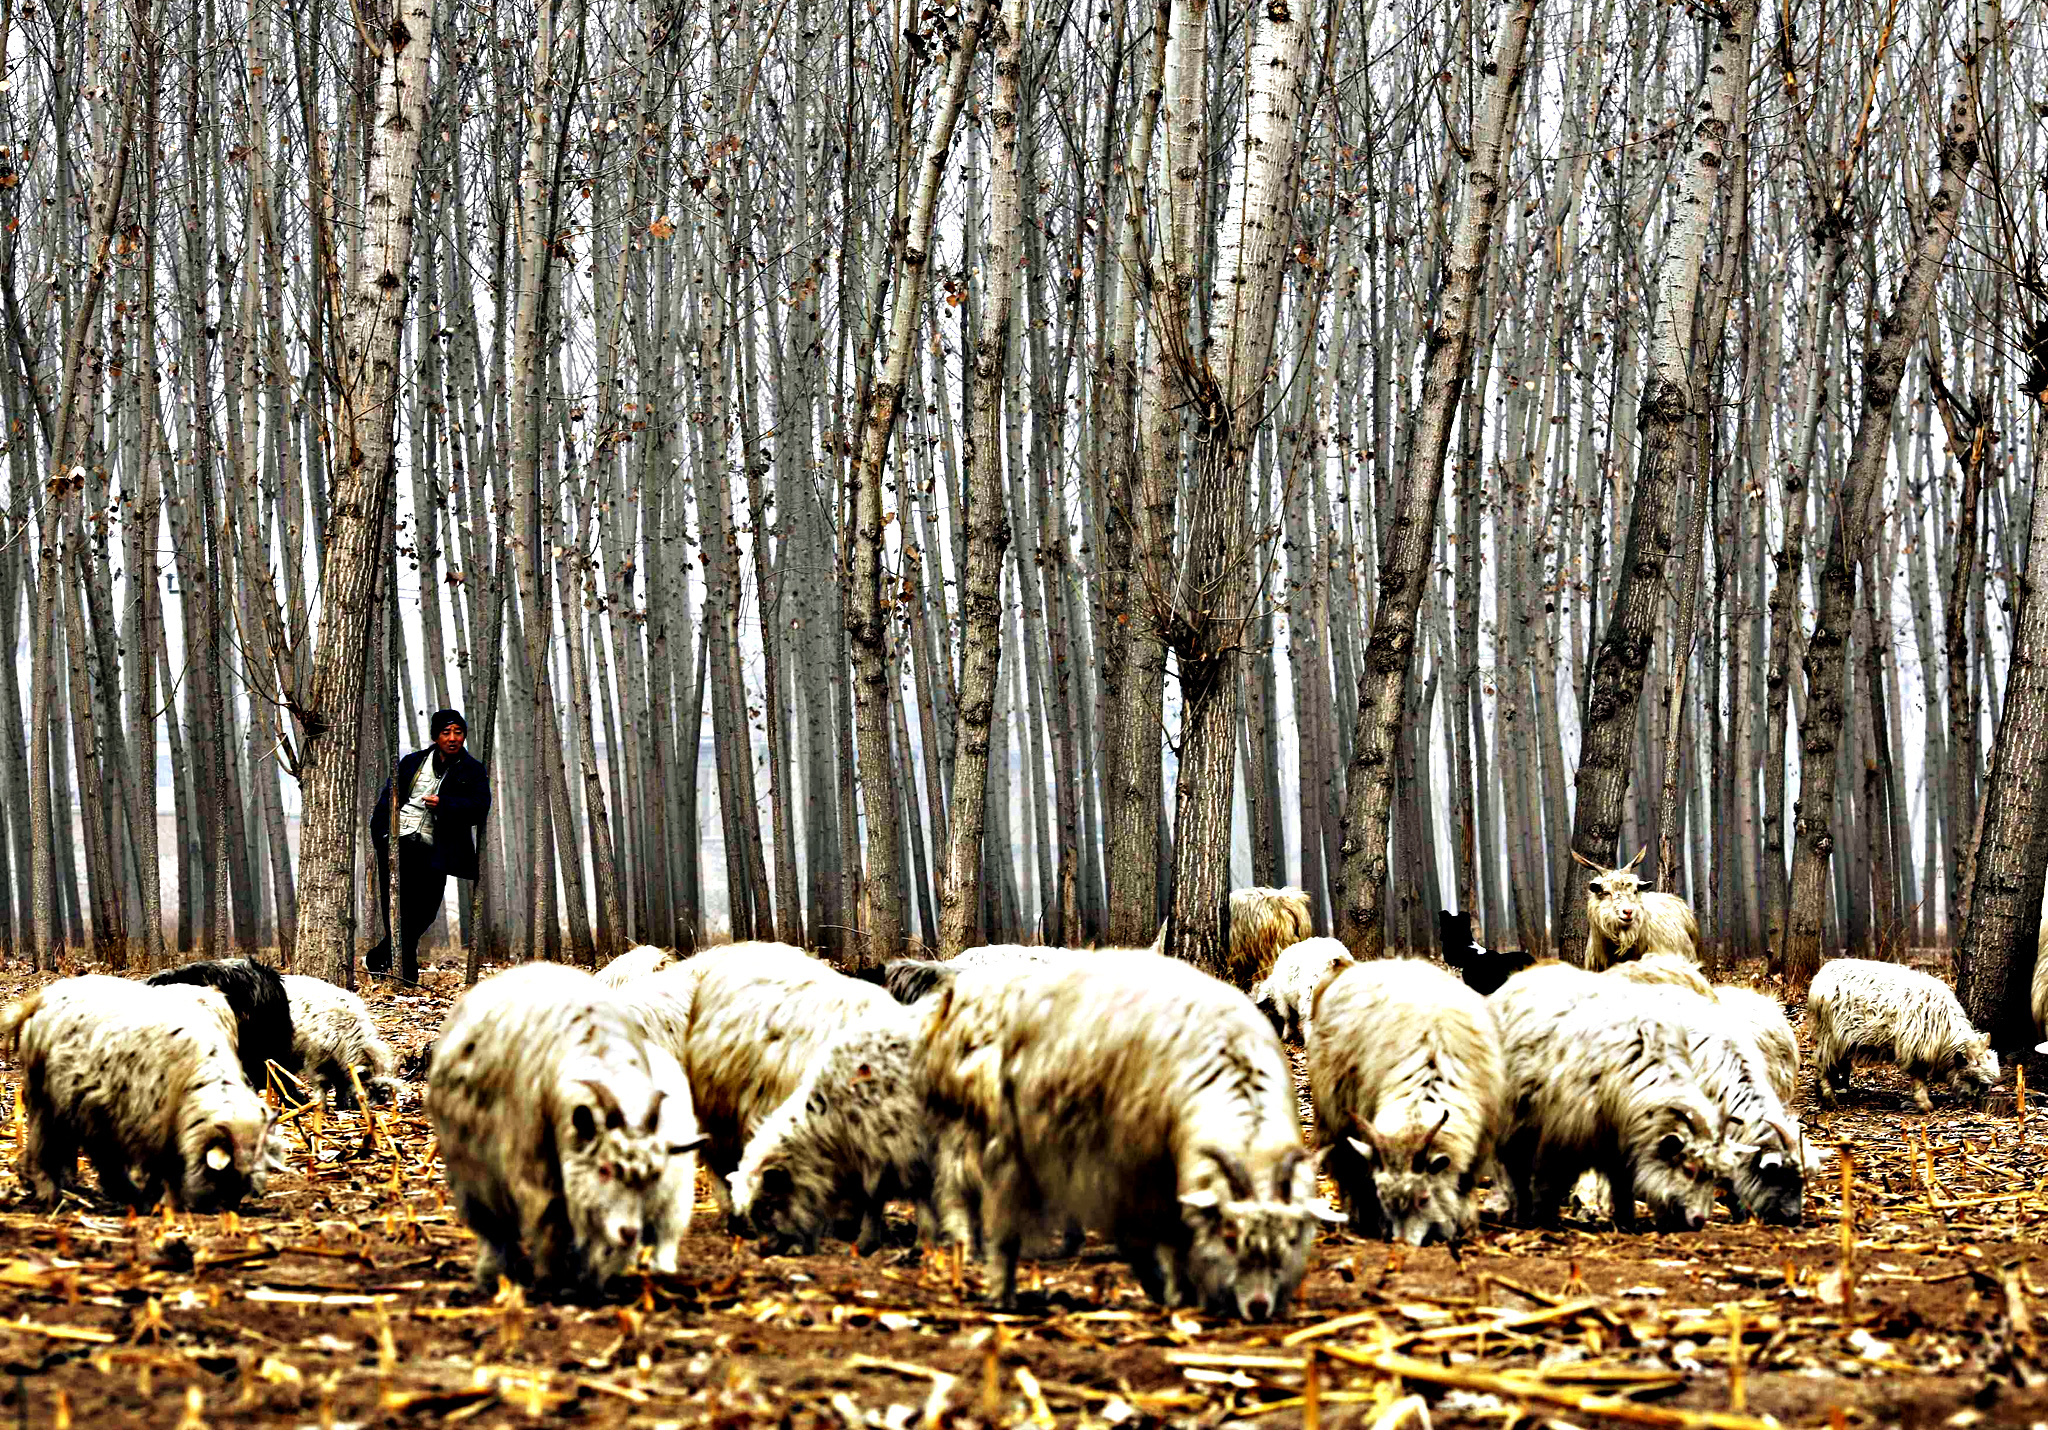 A herdsman takes a rest while he drives his goats at a corn field at Dashiwo village, on the outskirts of Beijing. The Chinese Lunar New Year on February 19 will welcome the Year of the Sheep (also known as the Year of the Goat or Ram